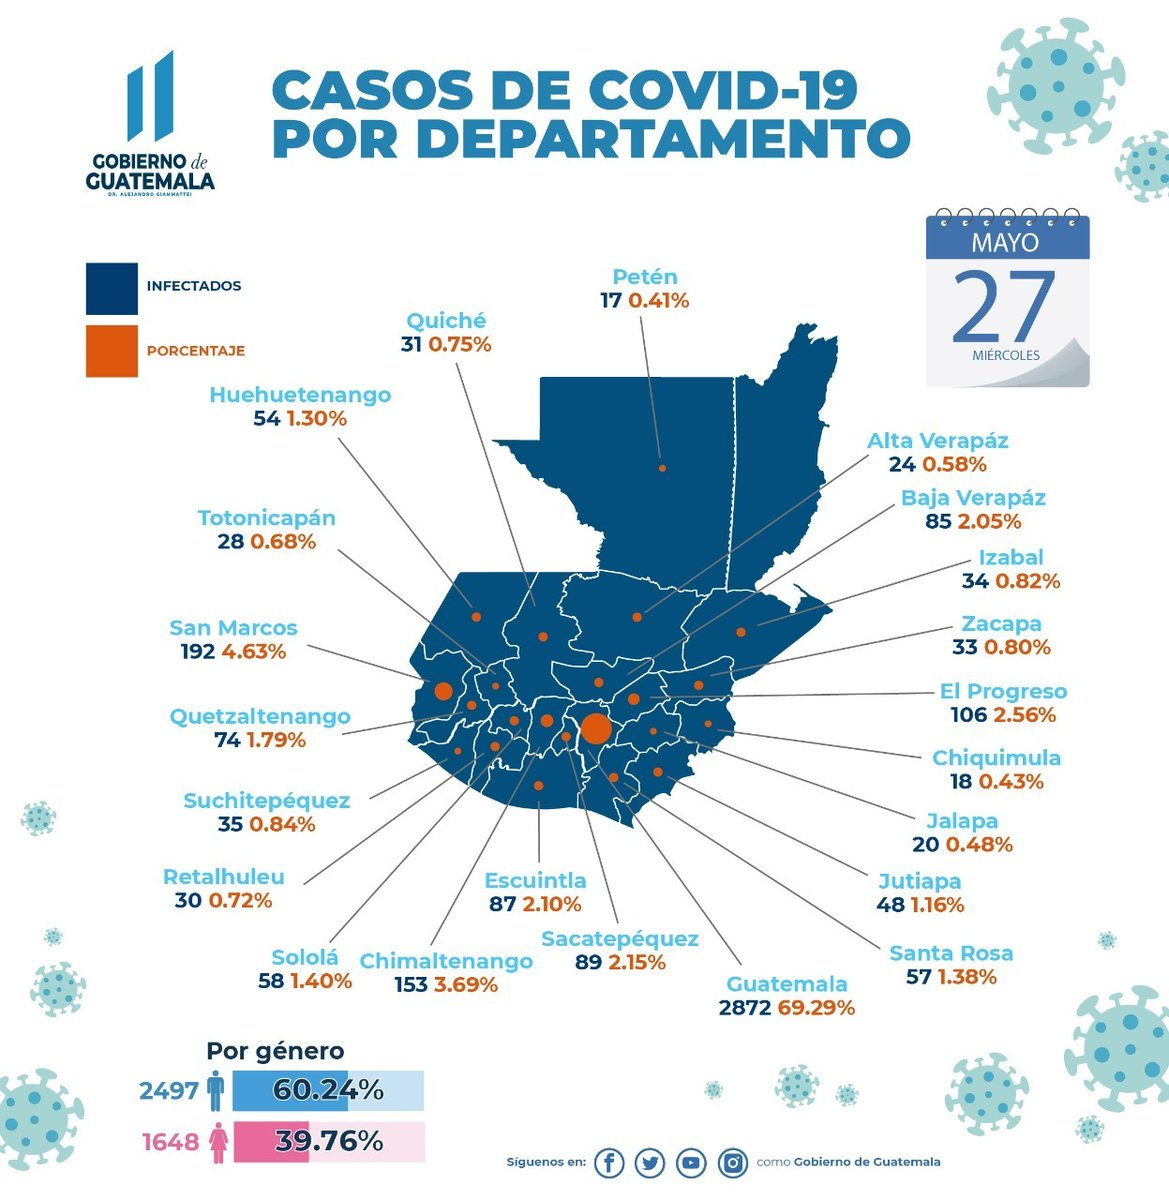 test Twitter Media - Gobierno comparte datos de casos de COVID-19 por departamento. https://t.co/jGzK1npo5B